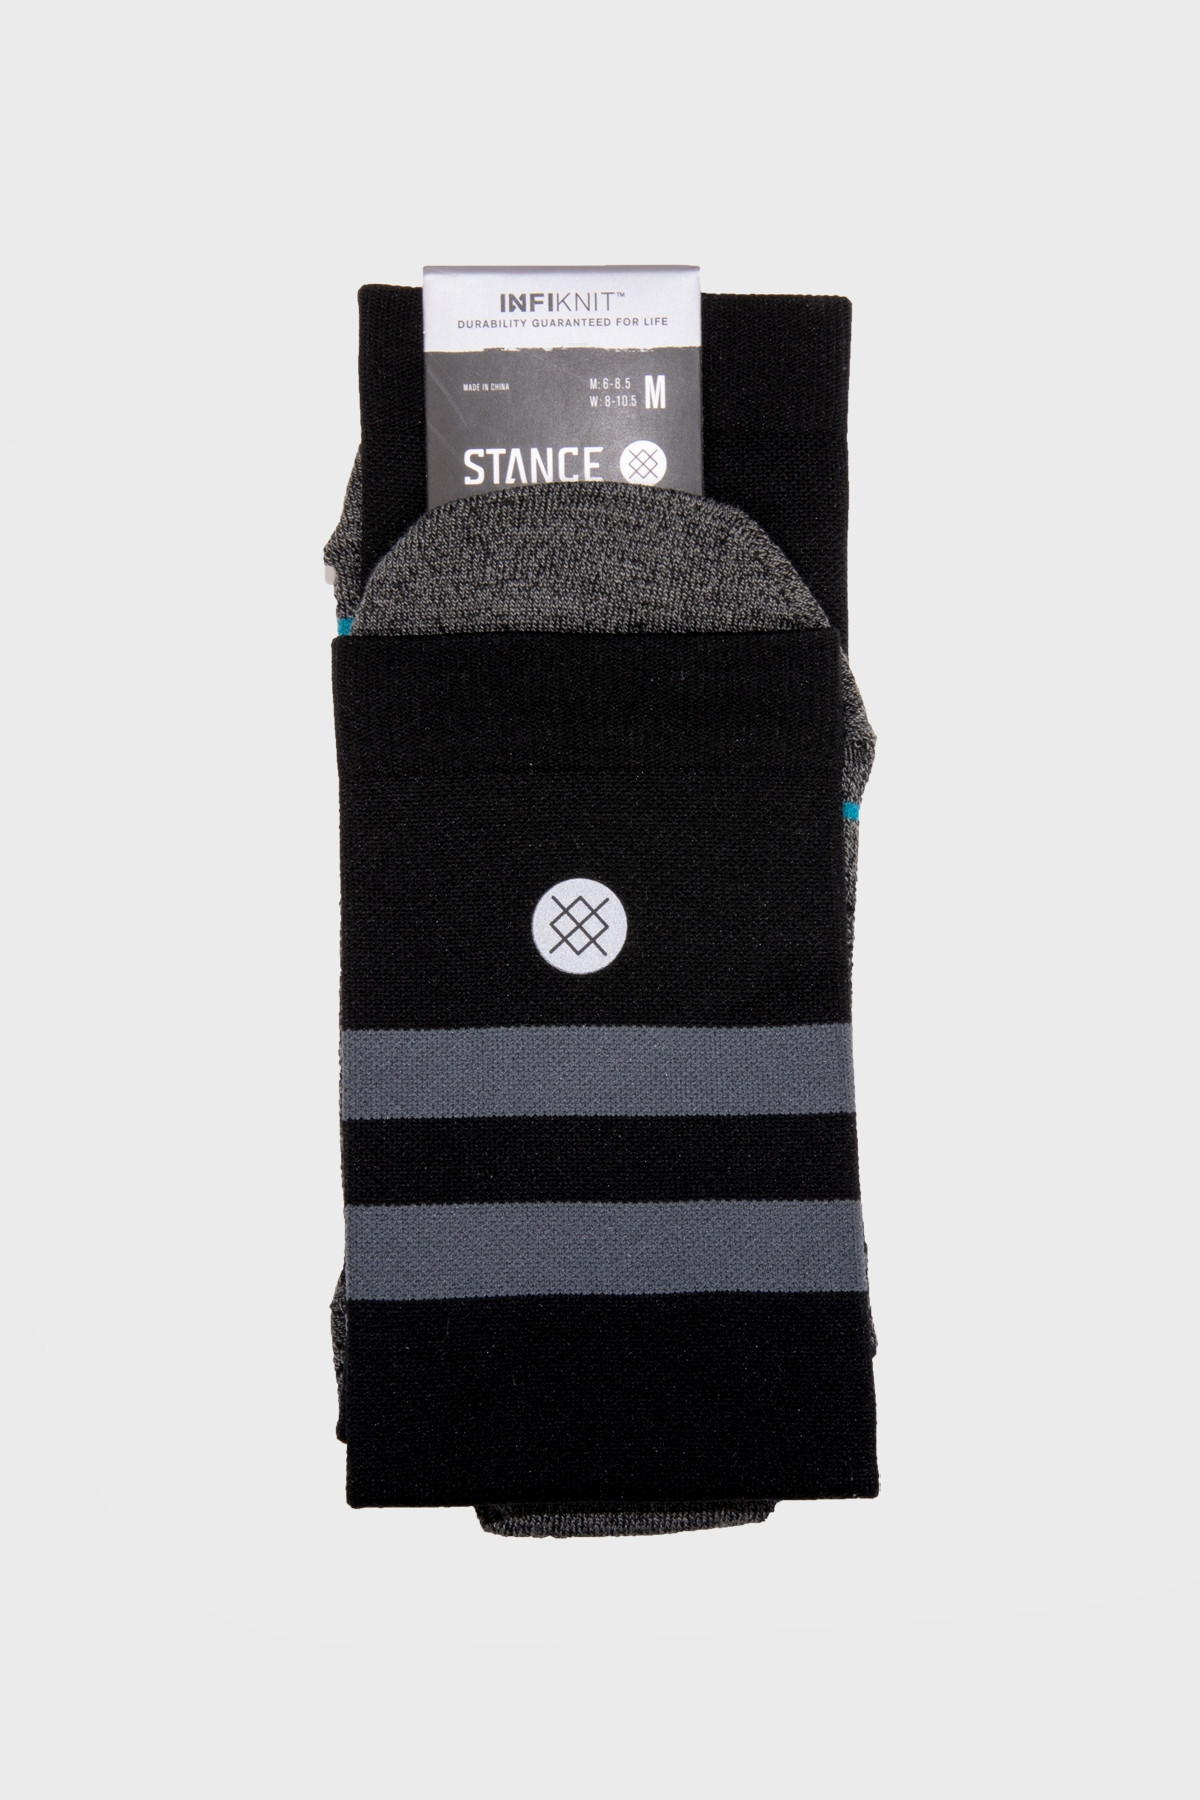 Stance - Run Light crew ST - Black